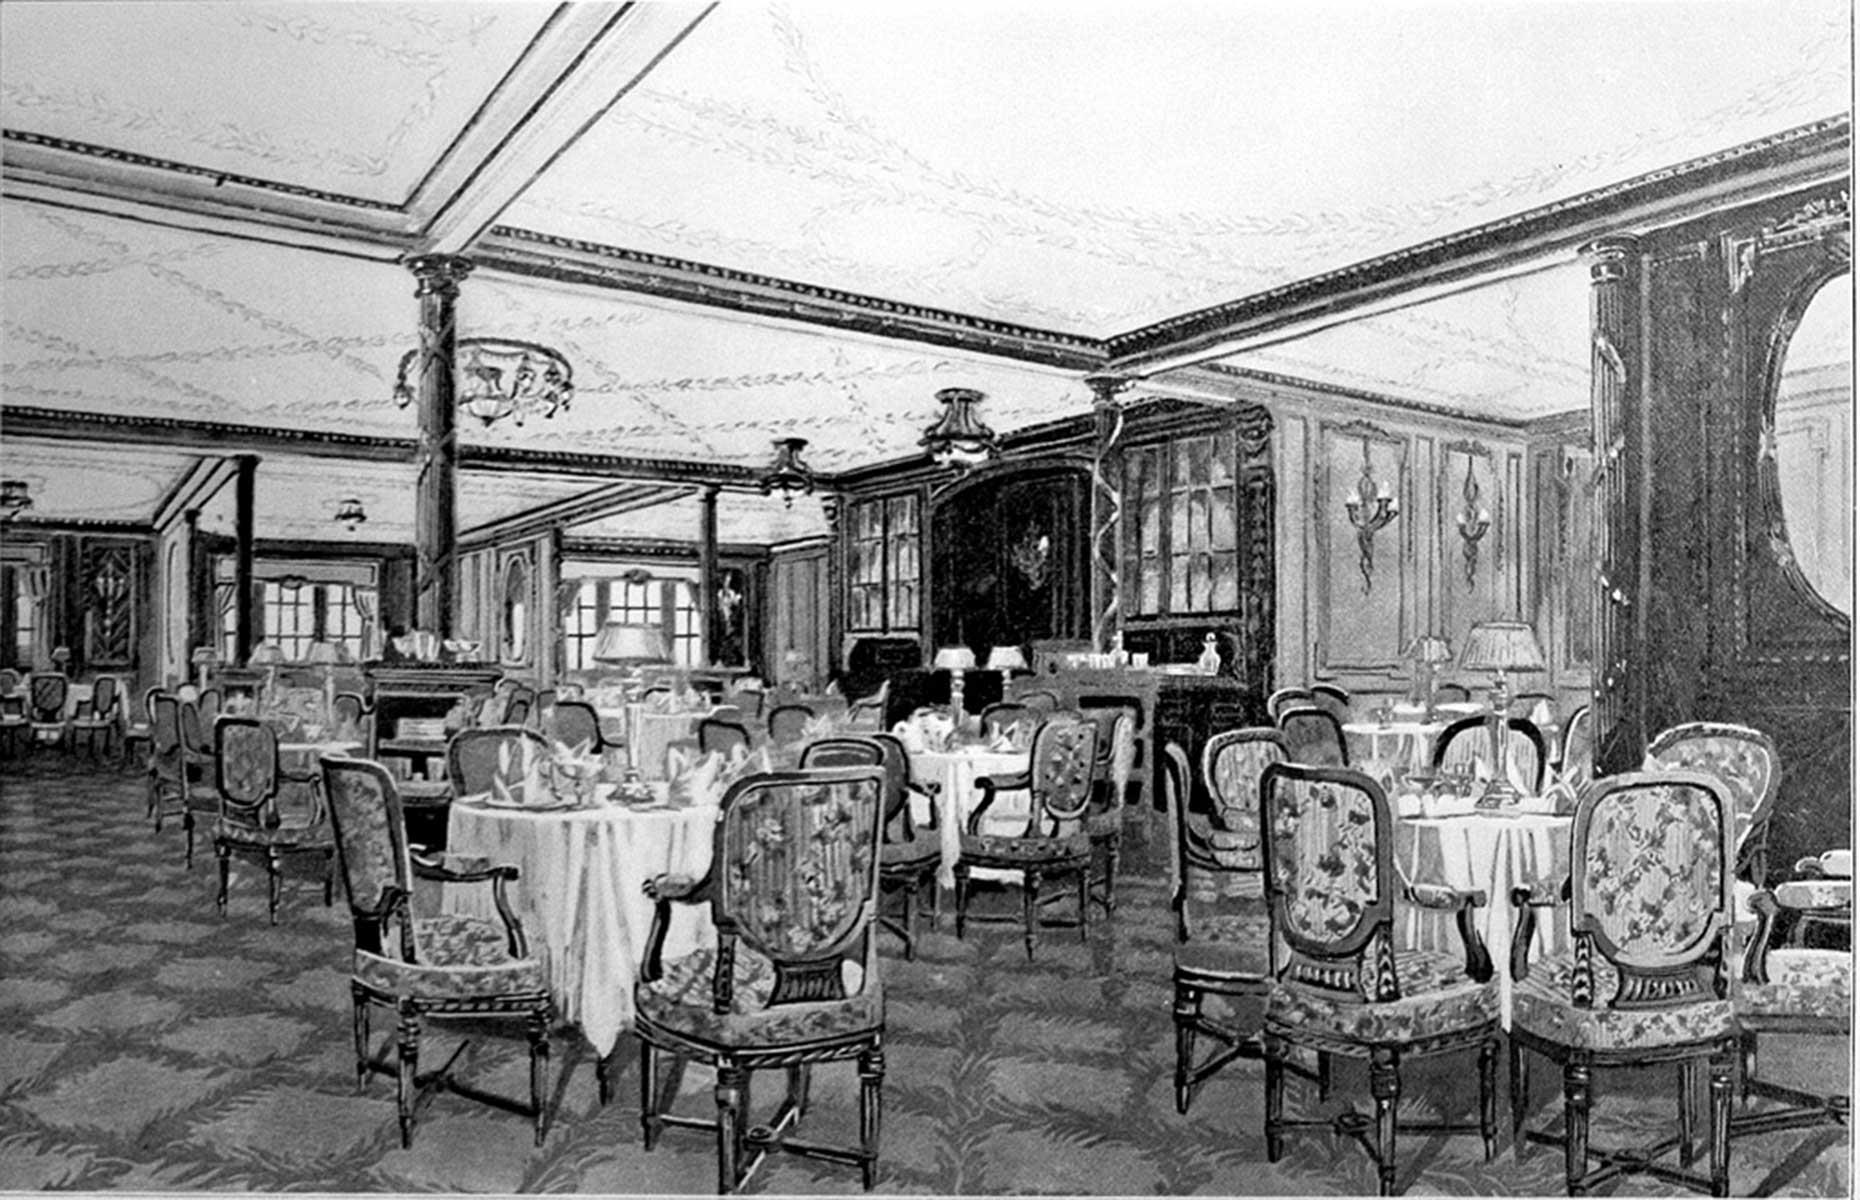 """Slide 10 of 46: For an extra cost, first-class passengers could also book to dine at restaurateur Luigi Gatti's intimate à la carte restaurant nicknamed the """"Ritz"""". Gatti had been poached from upmarketOddenino's Imperial Restaurant on Regent Street, London to run the Titanic's high-end spots.The elegant space was fully carpeted with French walnut-paneled walls and picture windows. Small tables were lit by crystal lamps and guests could eat any time between 8am and 11pm, which made it a popular choice."""